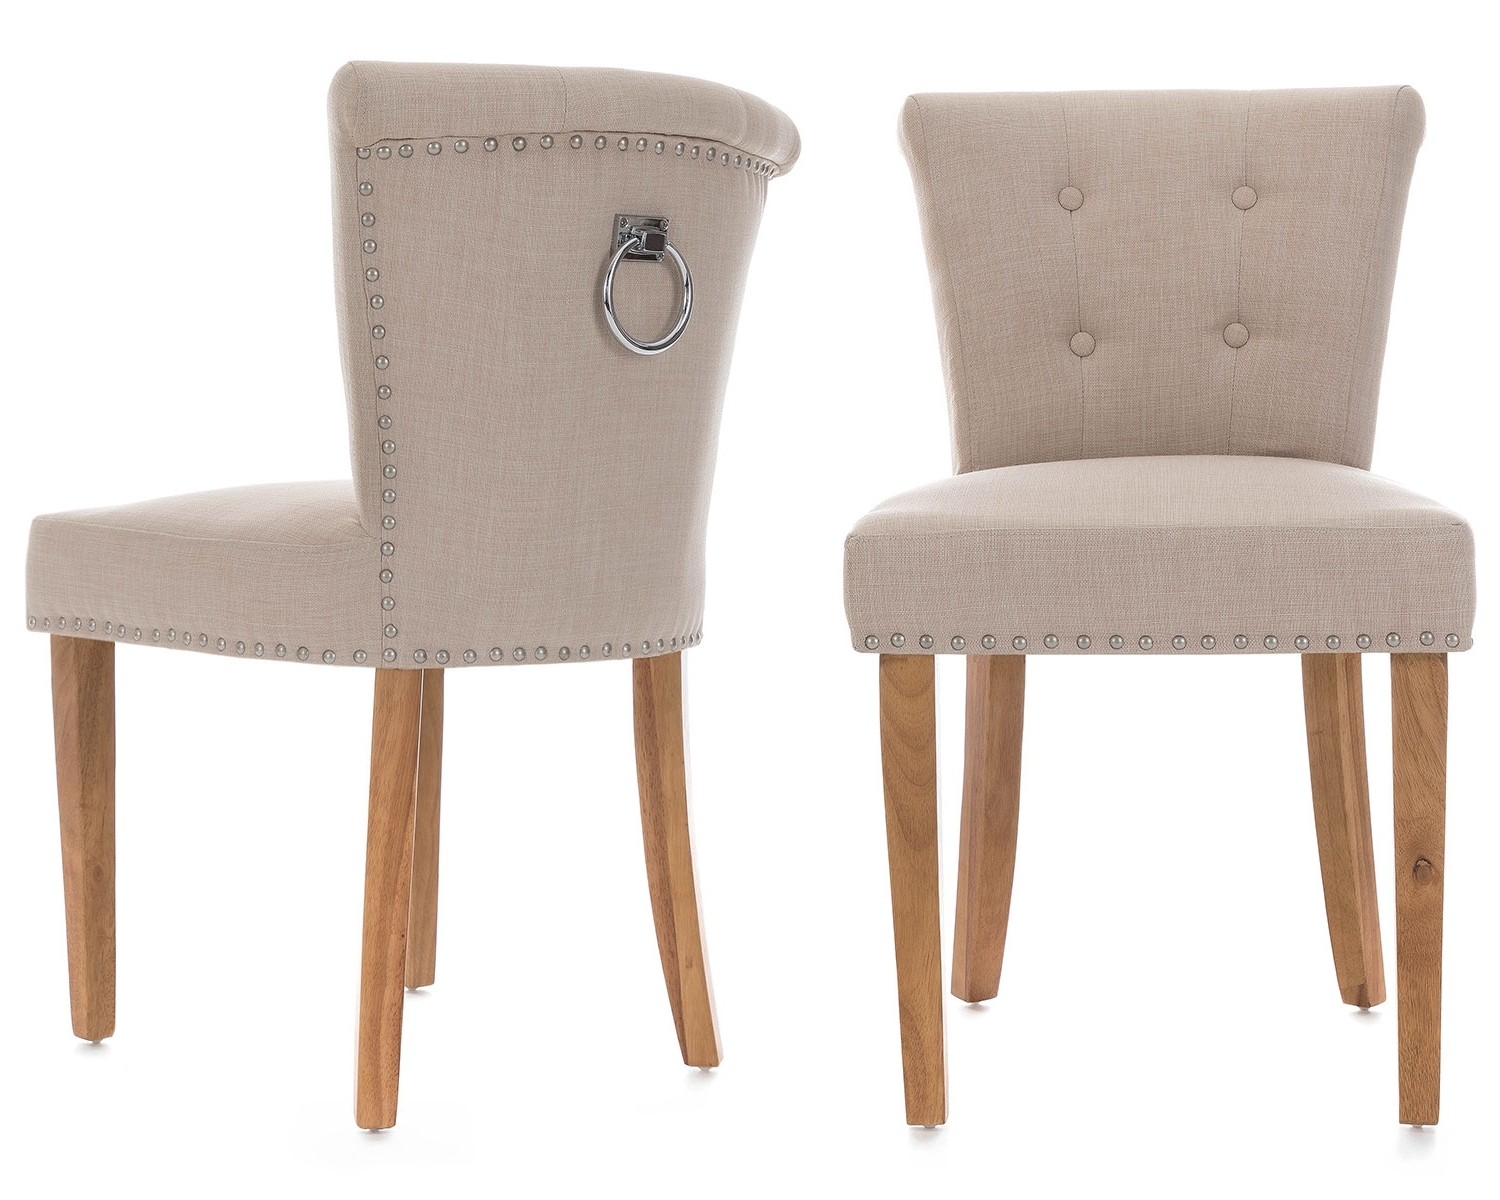 Pair Of Camden Dining Chairs In Cream Linen With Chrome Knocker And Regarding Well Liked Camden Dining Chairs (View 12 of 20)